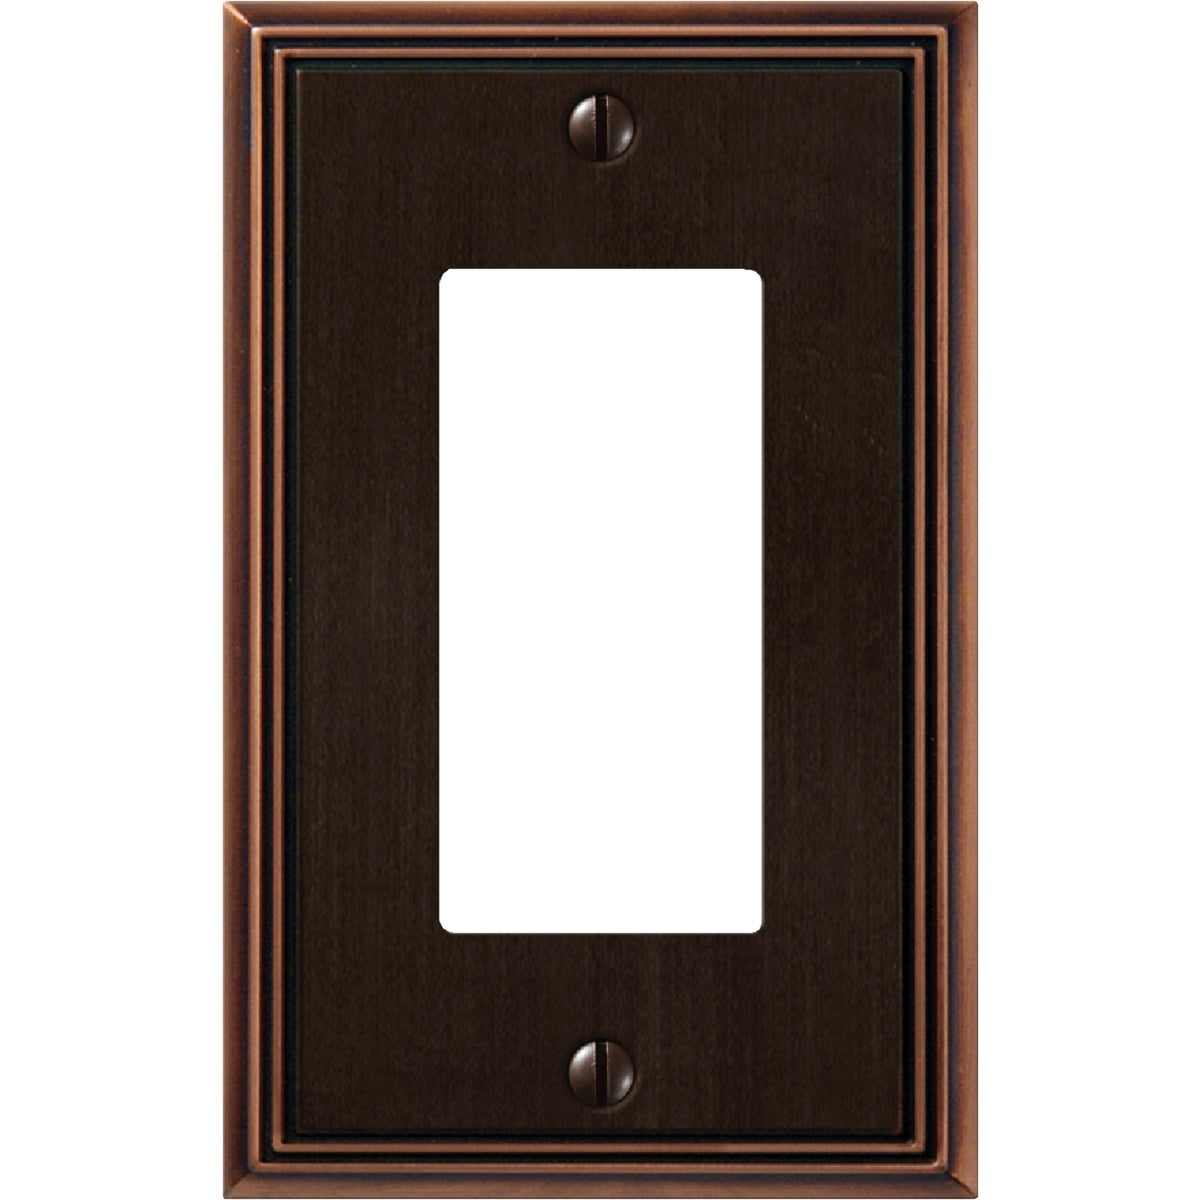 AB GFI WALLPLATE - 3117AZ by Jackson Deerfield Mf